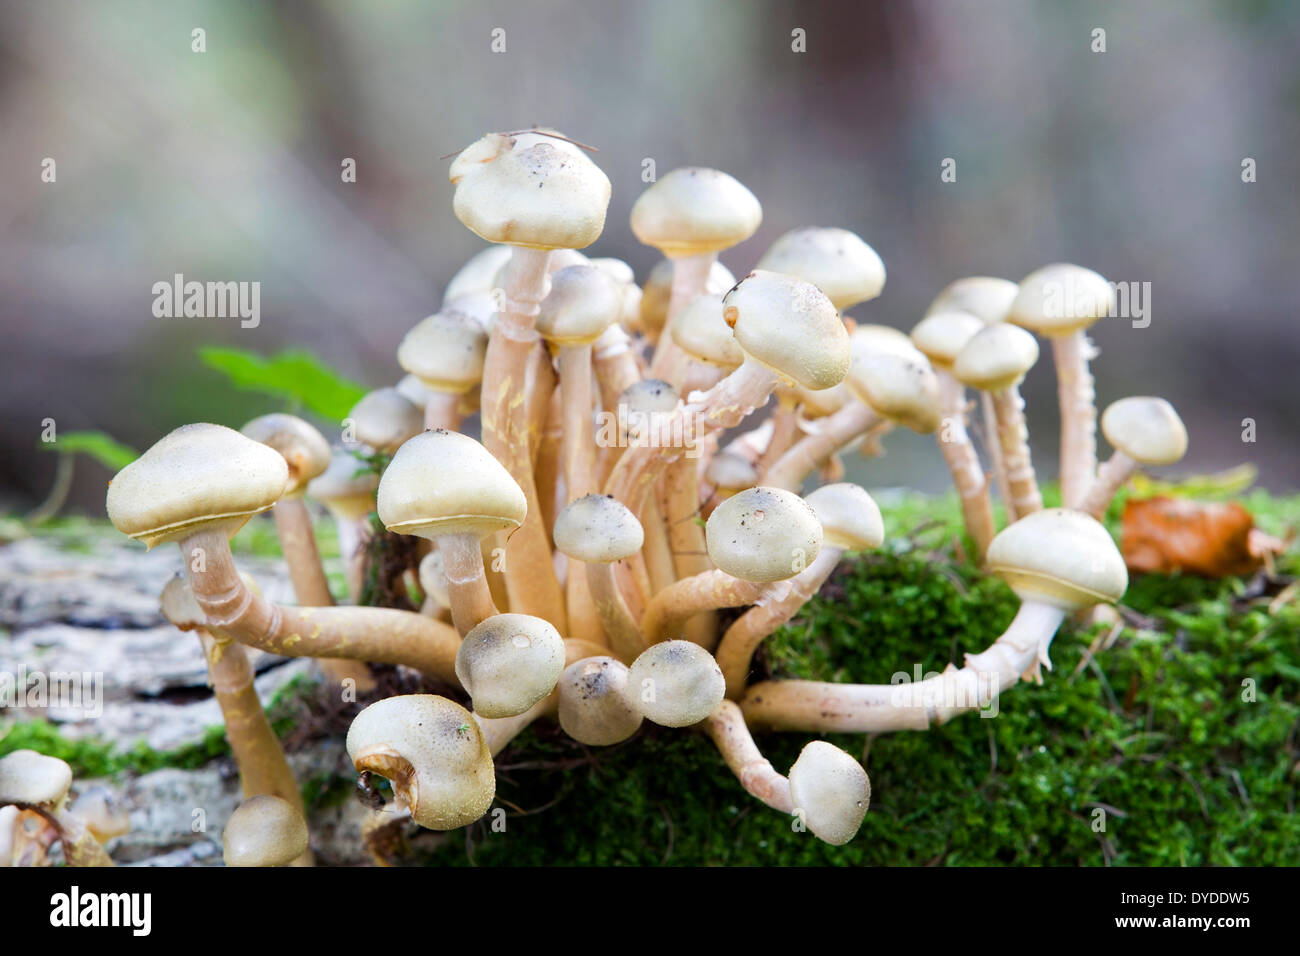 Honey fungus on a decayed fallen log. - Stock Image